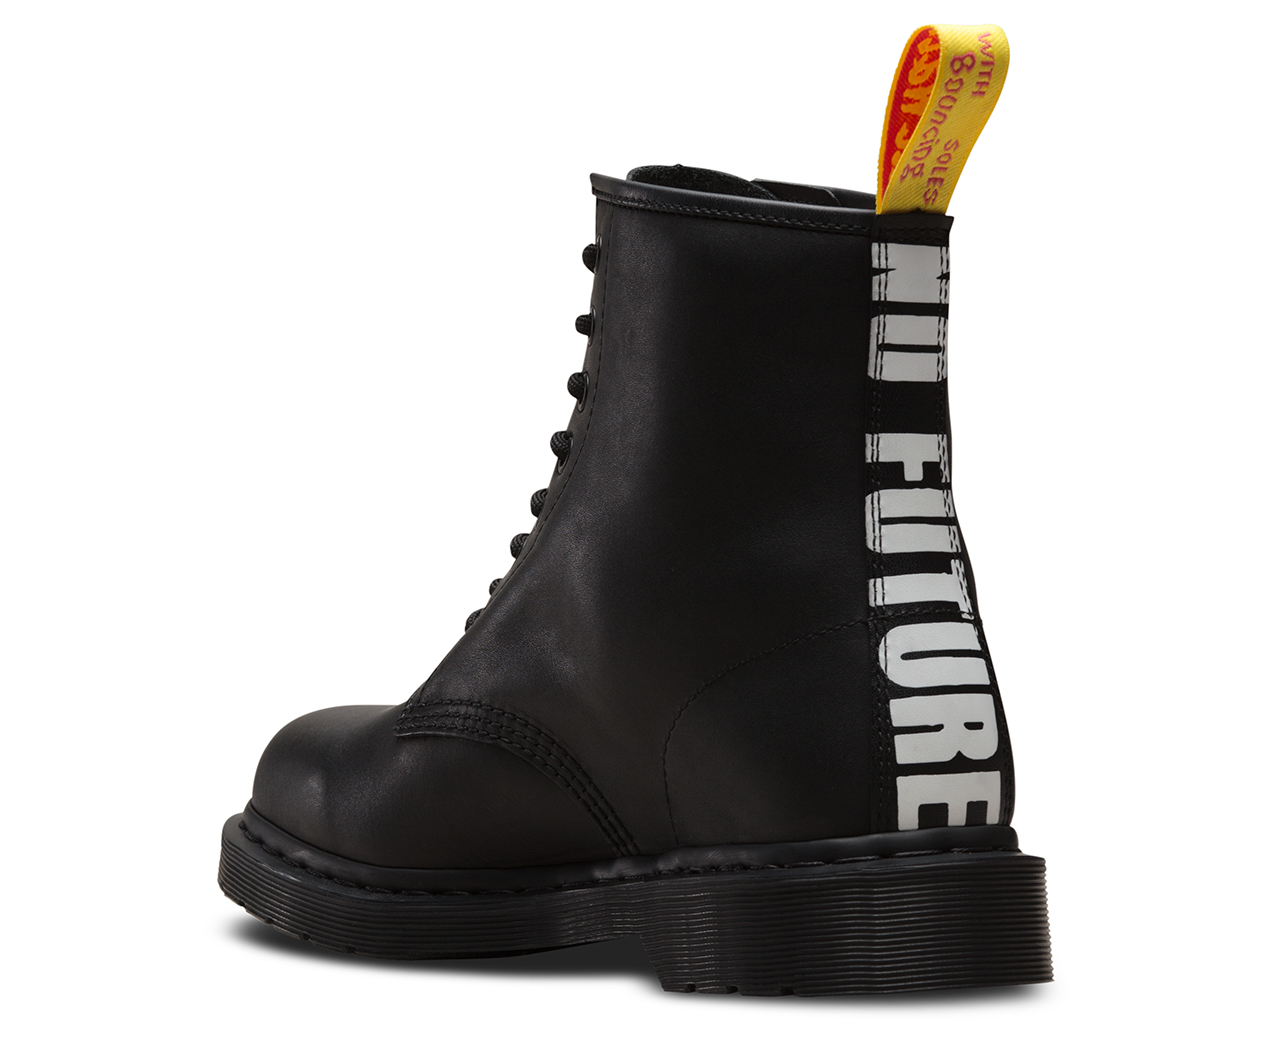 1460 Sex Pistols No Future Boots Dr Martens Official Site